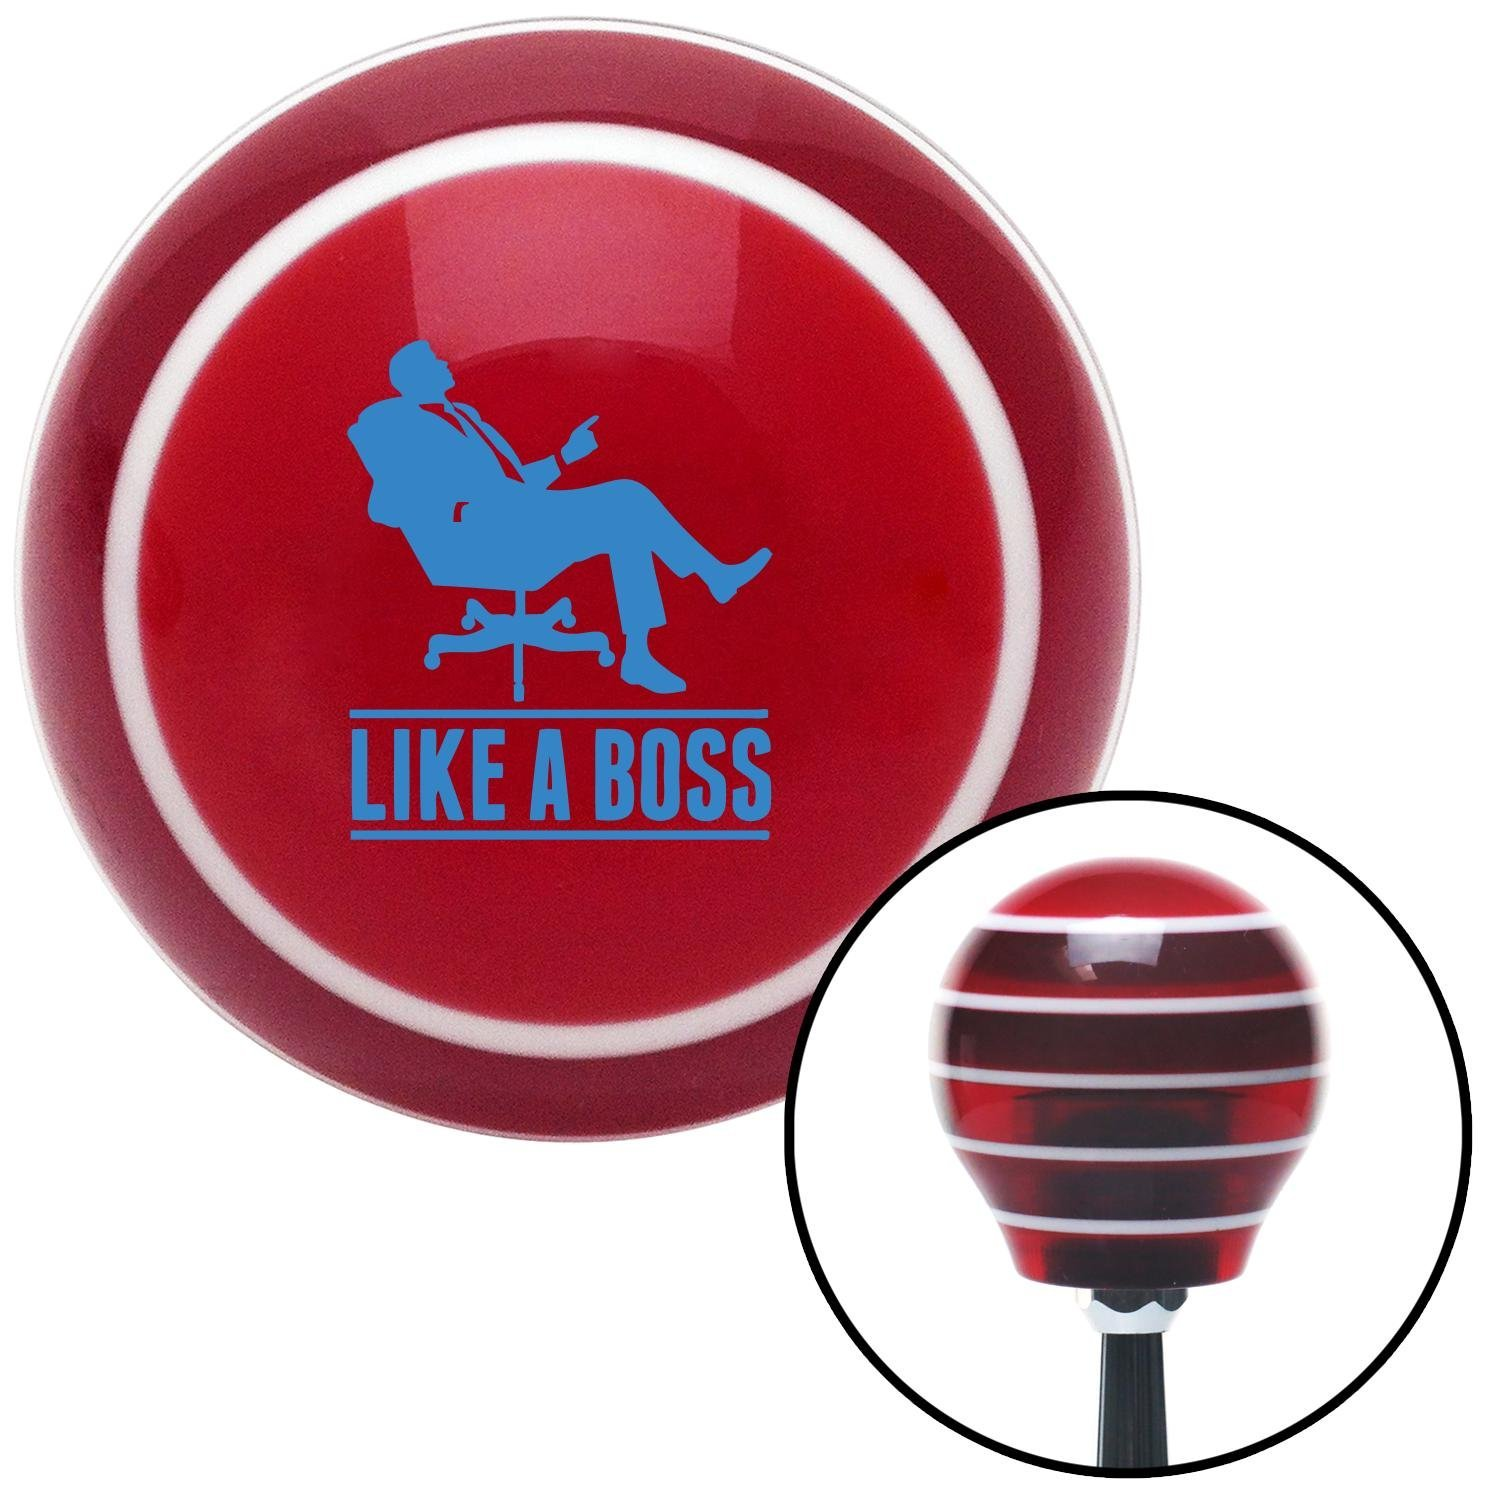 Blue Like A Boss American Shifter 116697 Red Stripe Shift Knob with M16 x 1.5 Insert